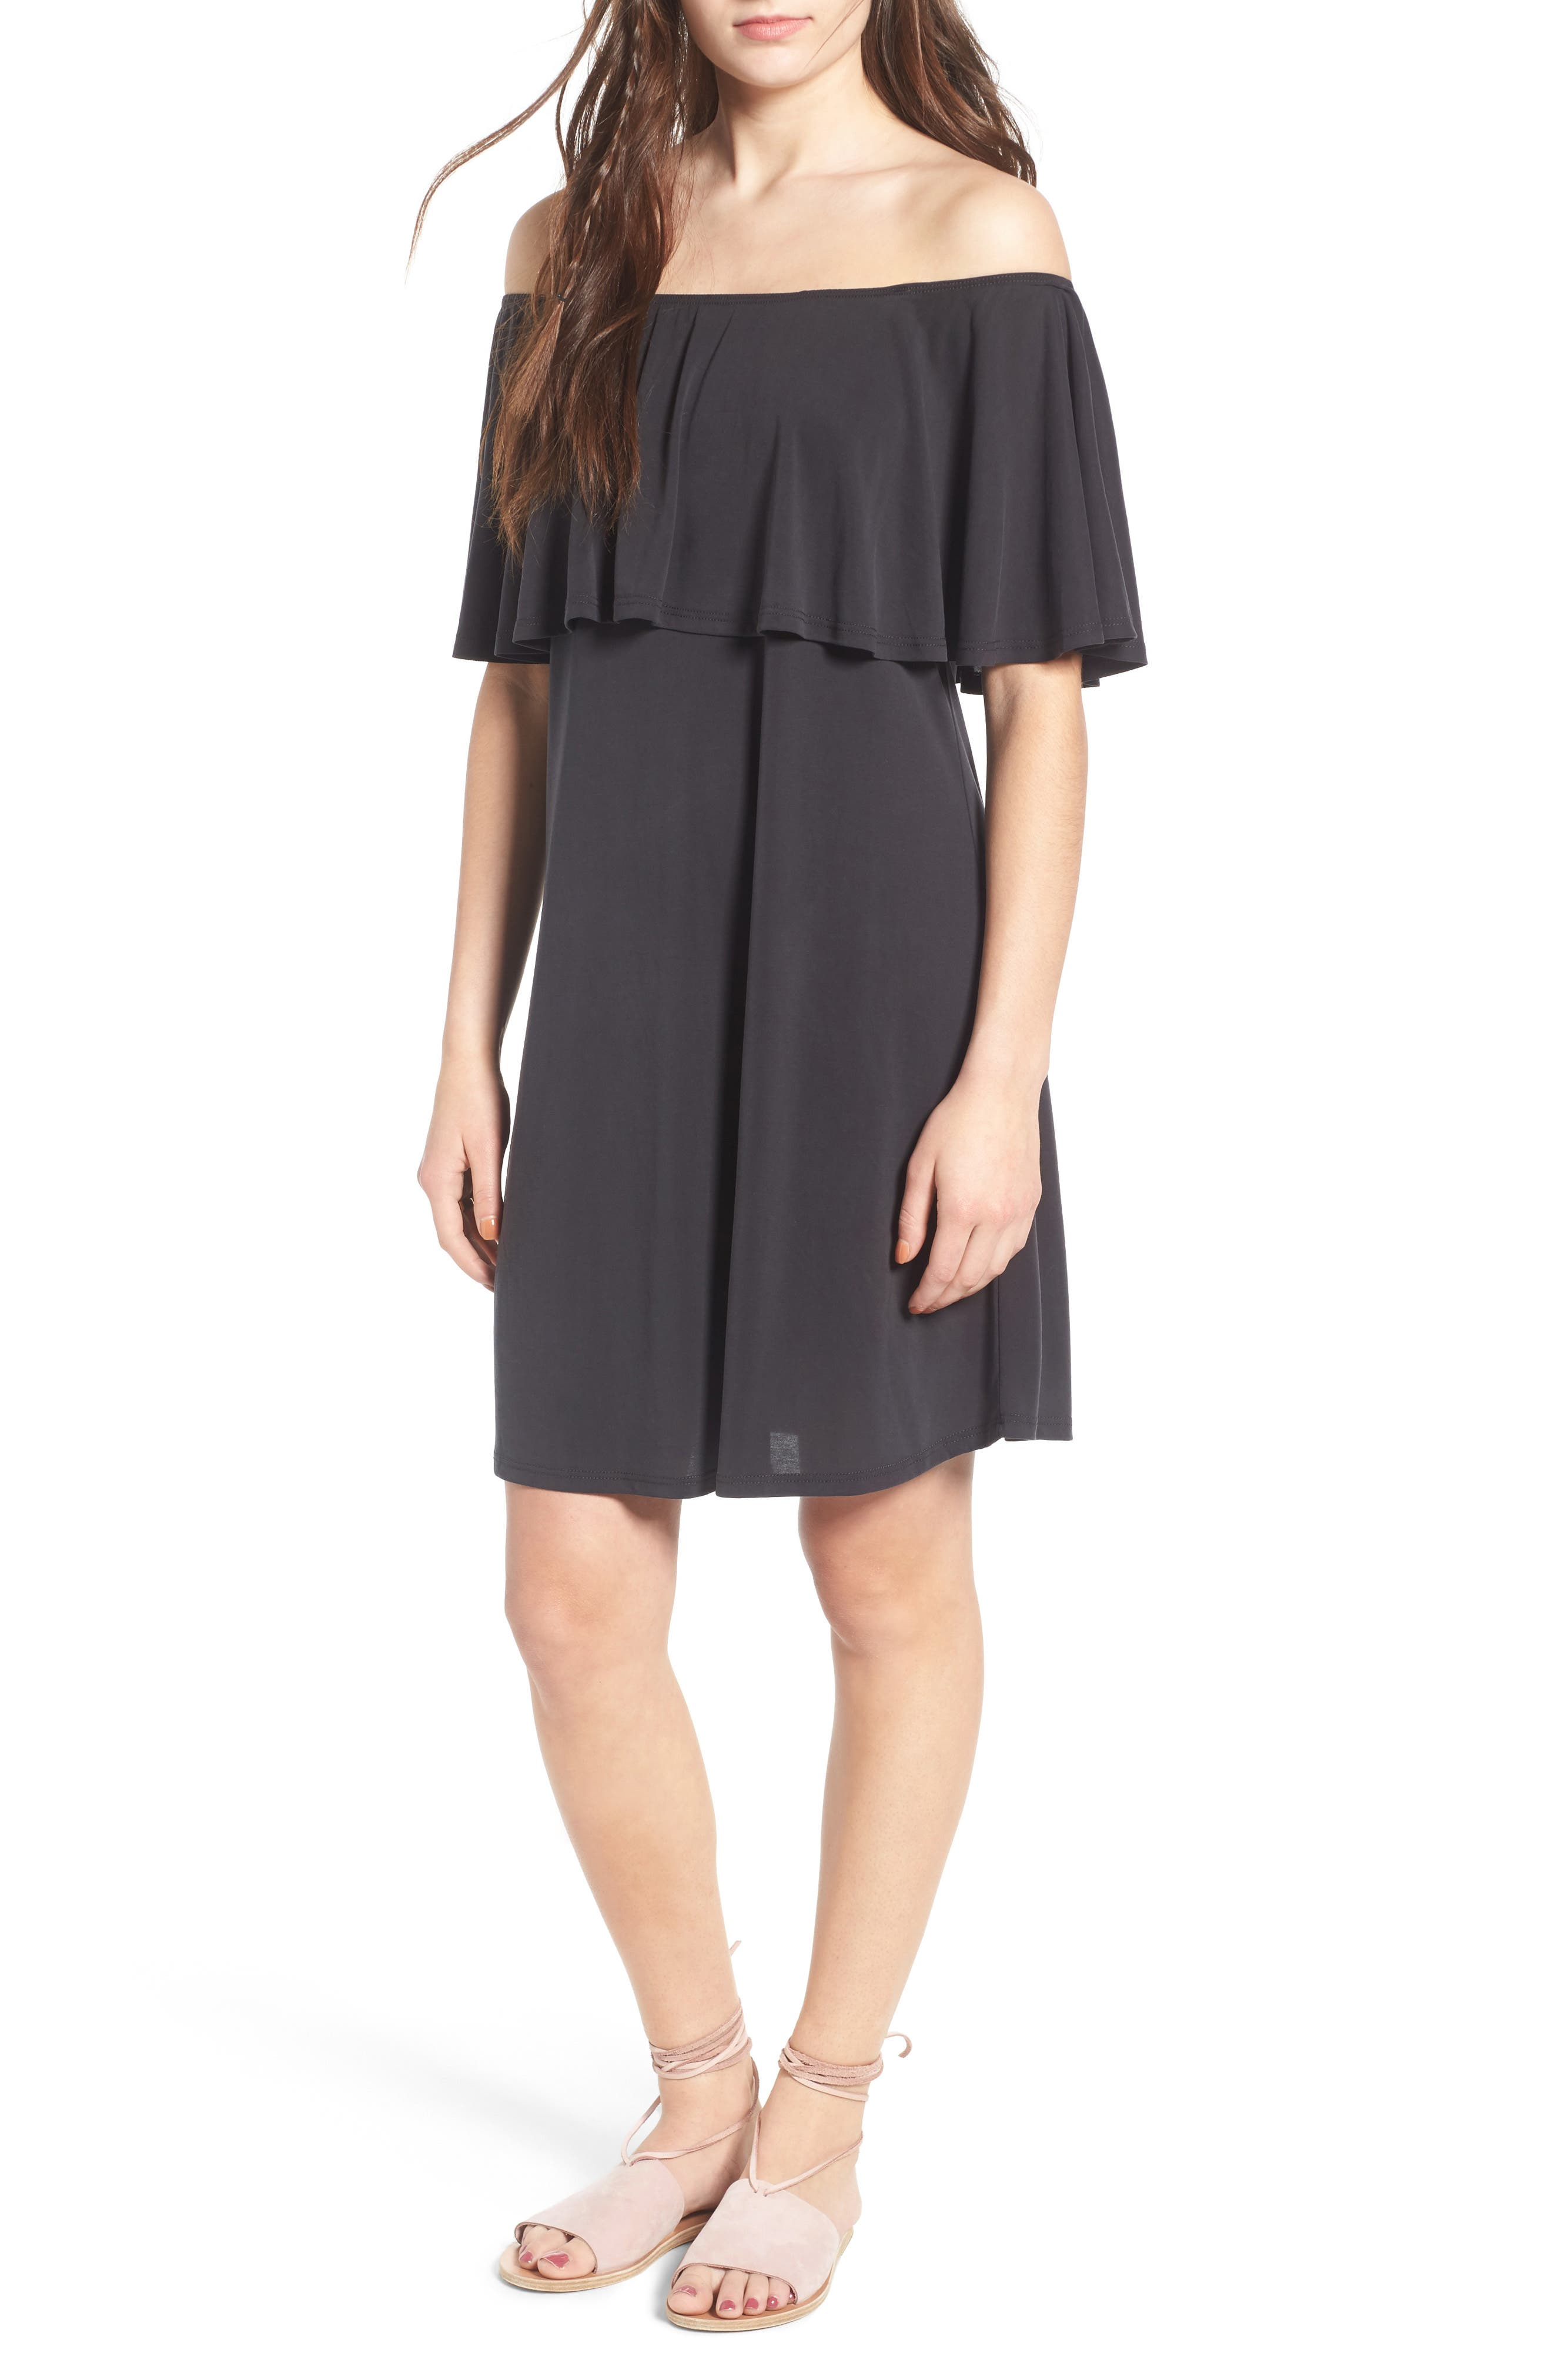 Alternate Image 1 Selected - BP. Off the Shoulder Ruffle Dress